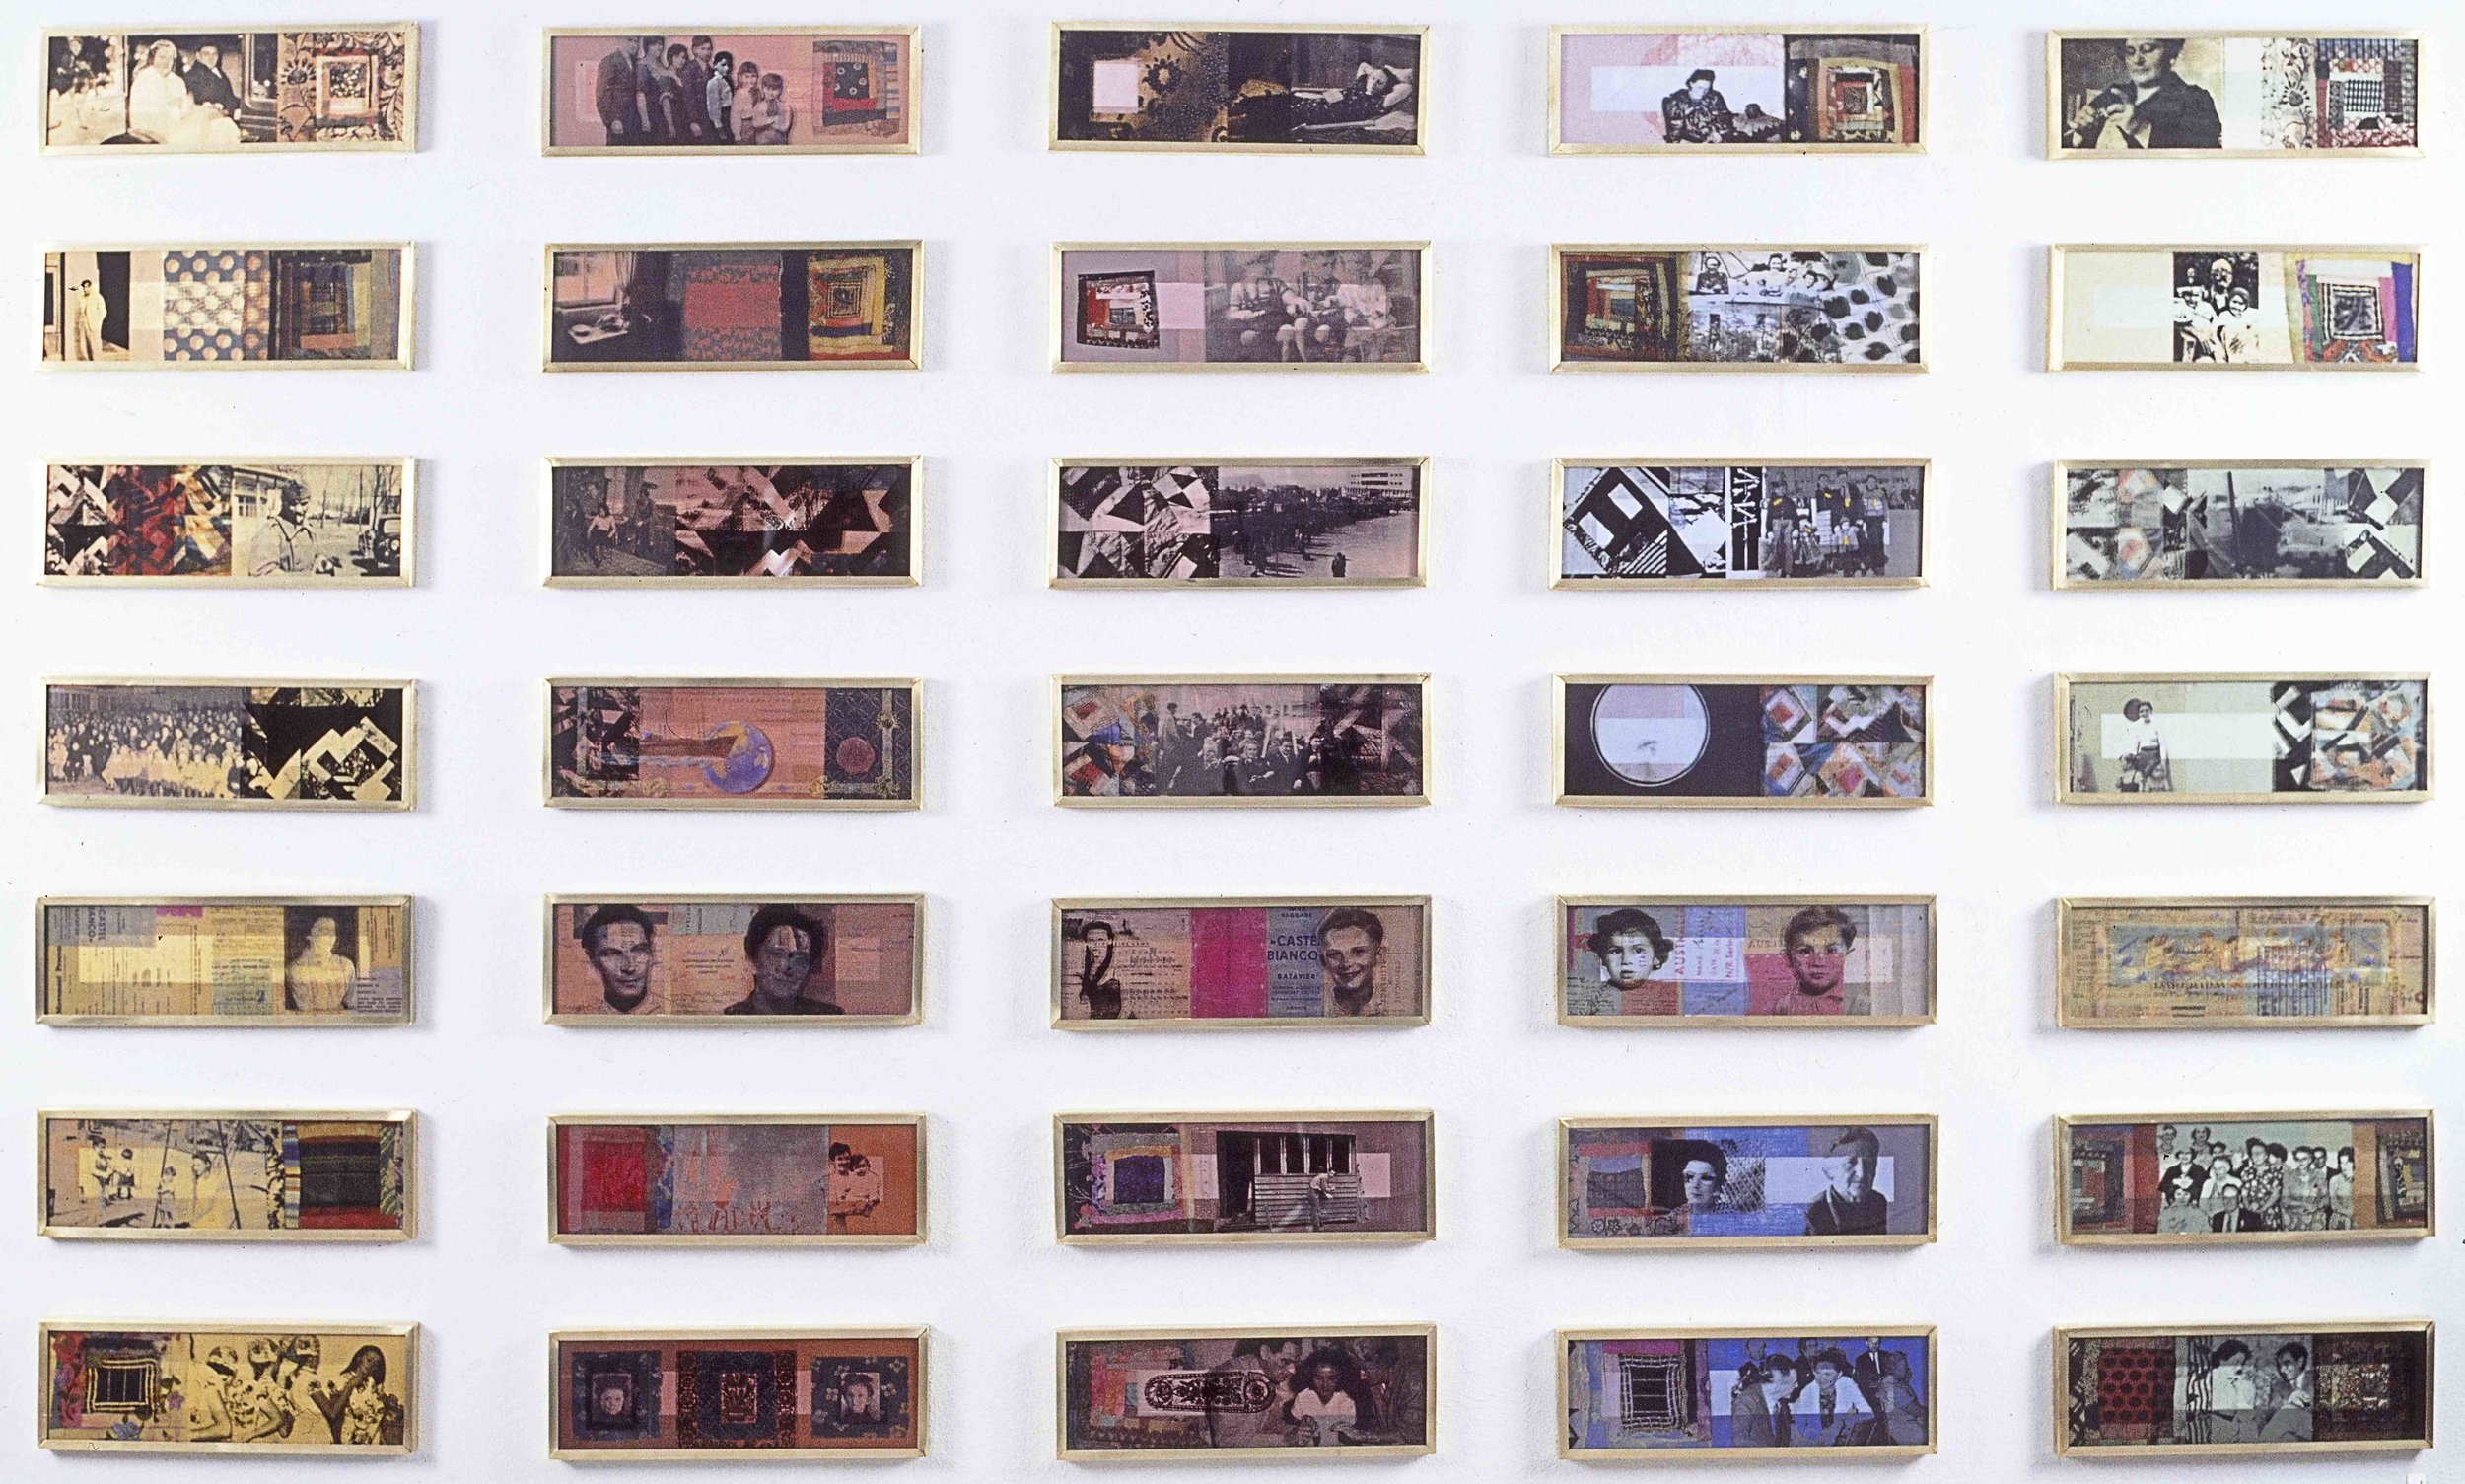 Quilt 1 (1934-1954) 1995, 15 x 45cm each (35 panels), photographic transfer on acrylic sheet with Bio paint on board. Art Gallery of Western Australia Collection.jpg